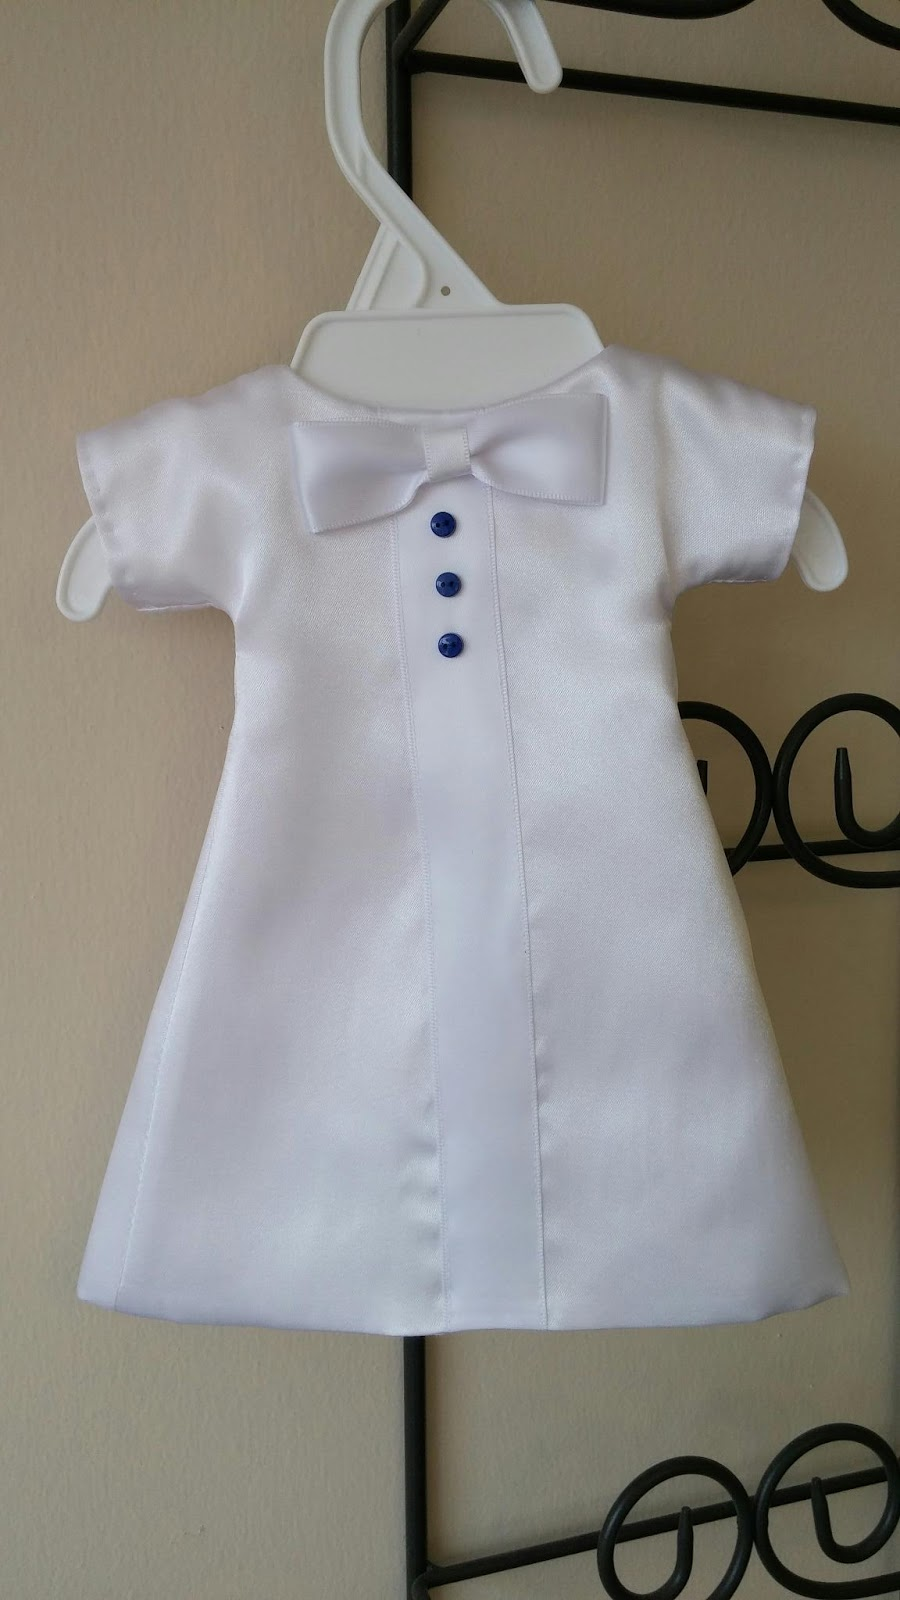 Nant-y-glo Needles: More Infant Loss Gowns